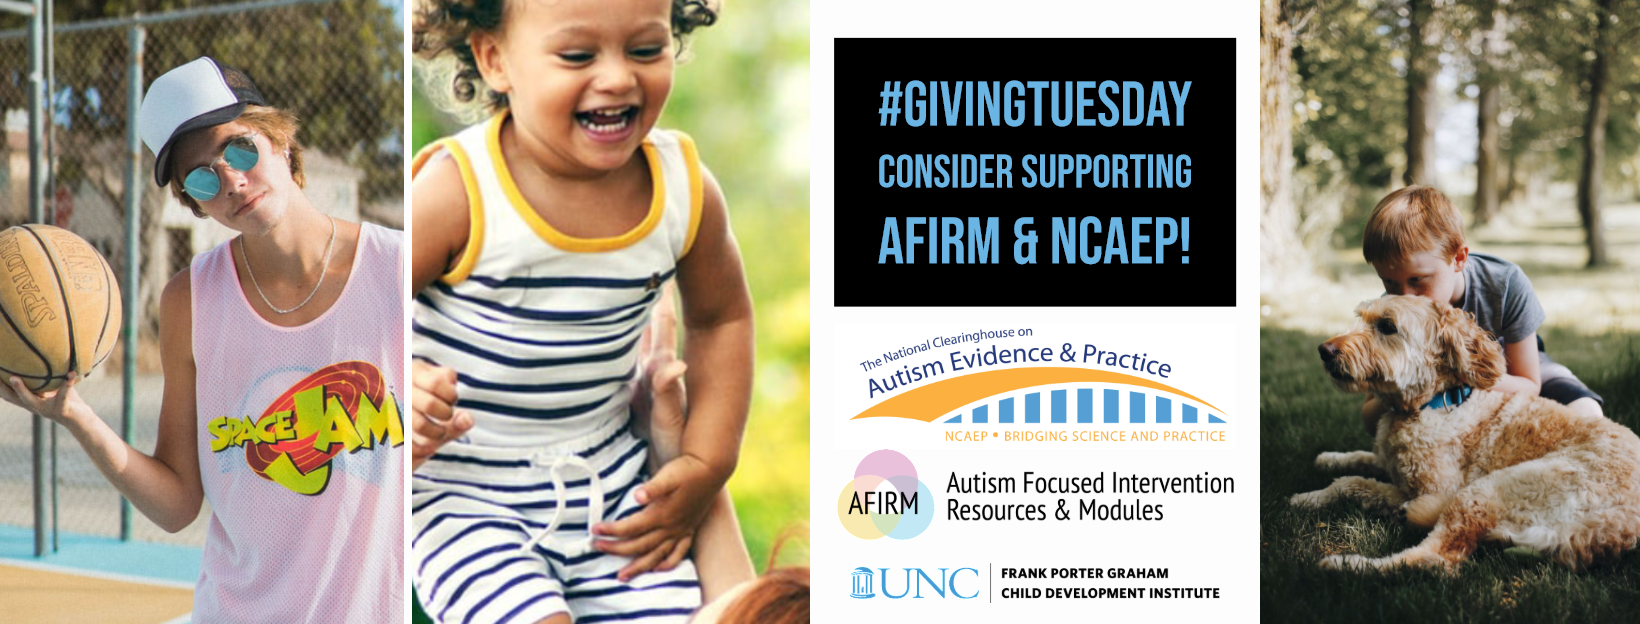 Support AFIRM and NCAEP on Giving Tuesday